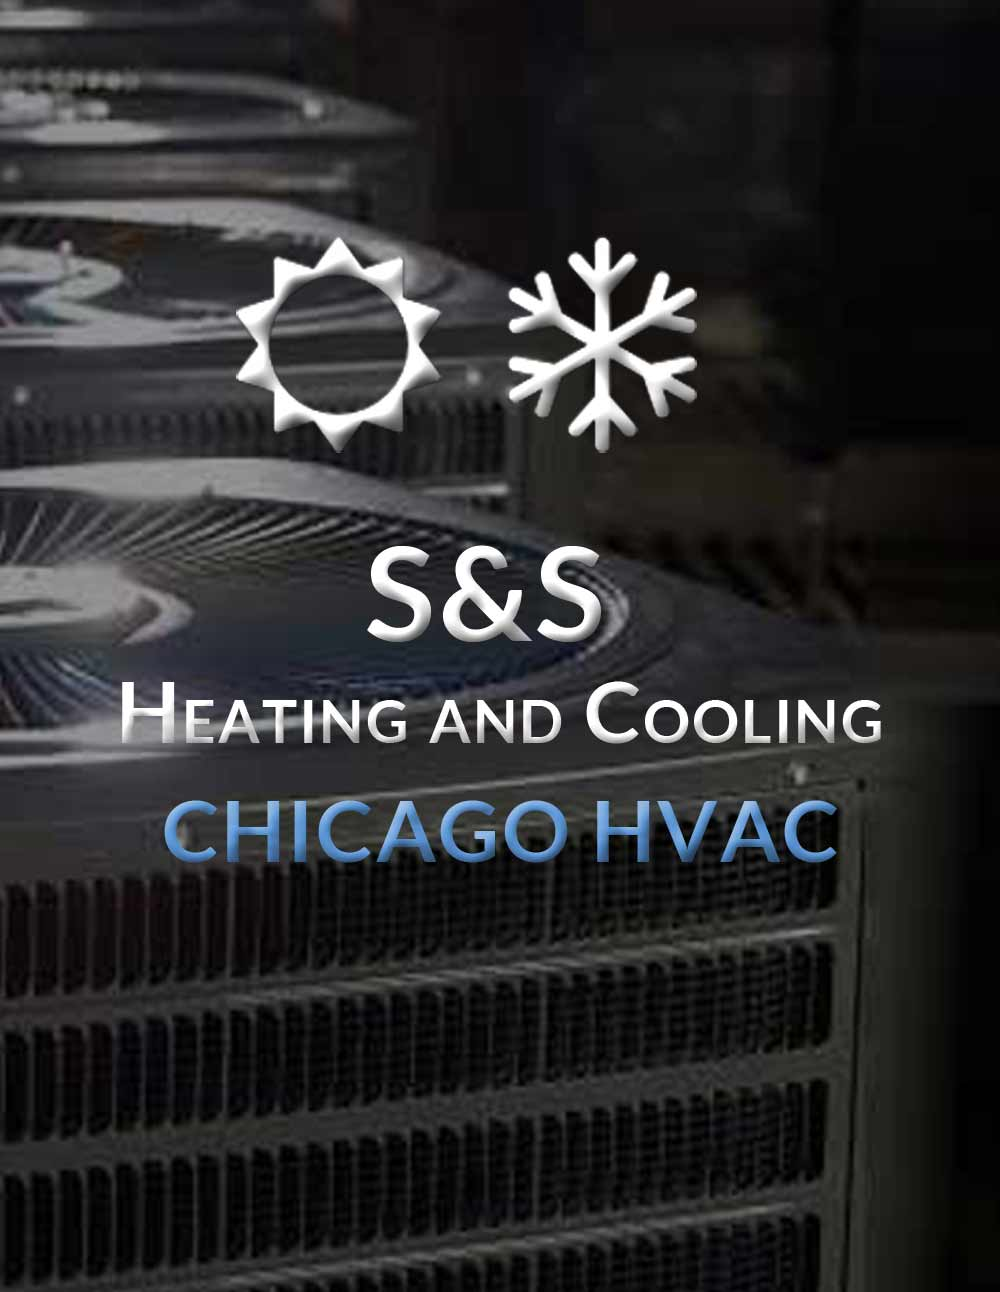 S&S Heating and Cooling